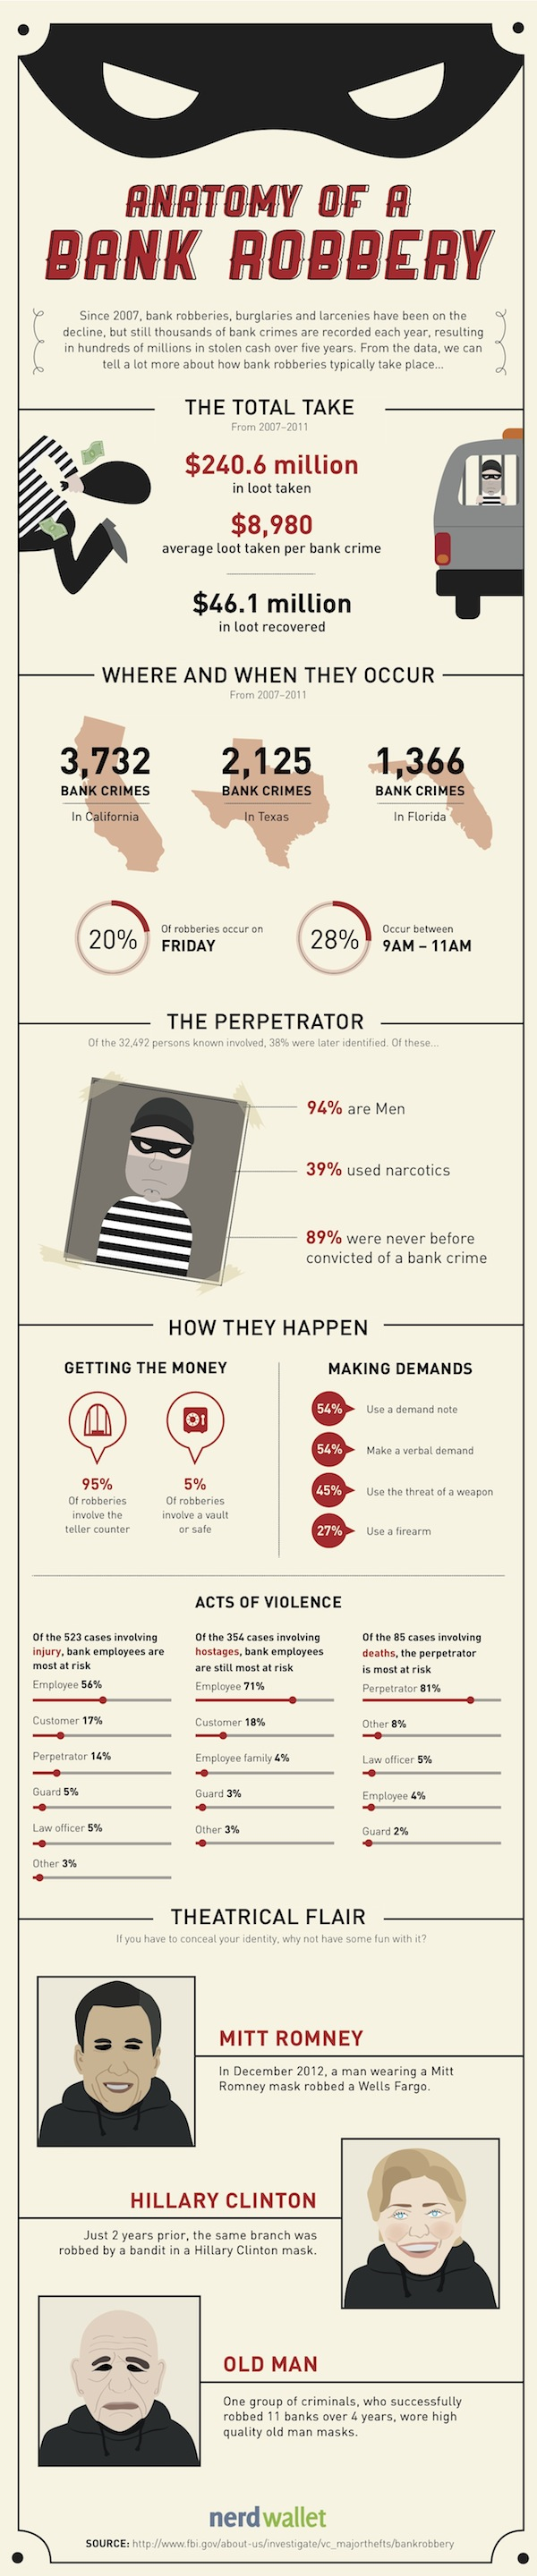 16. Anatomy of a Bank Robbery